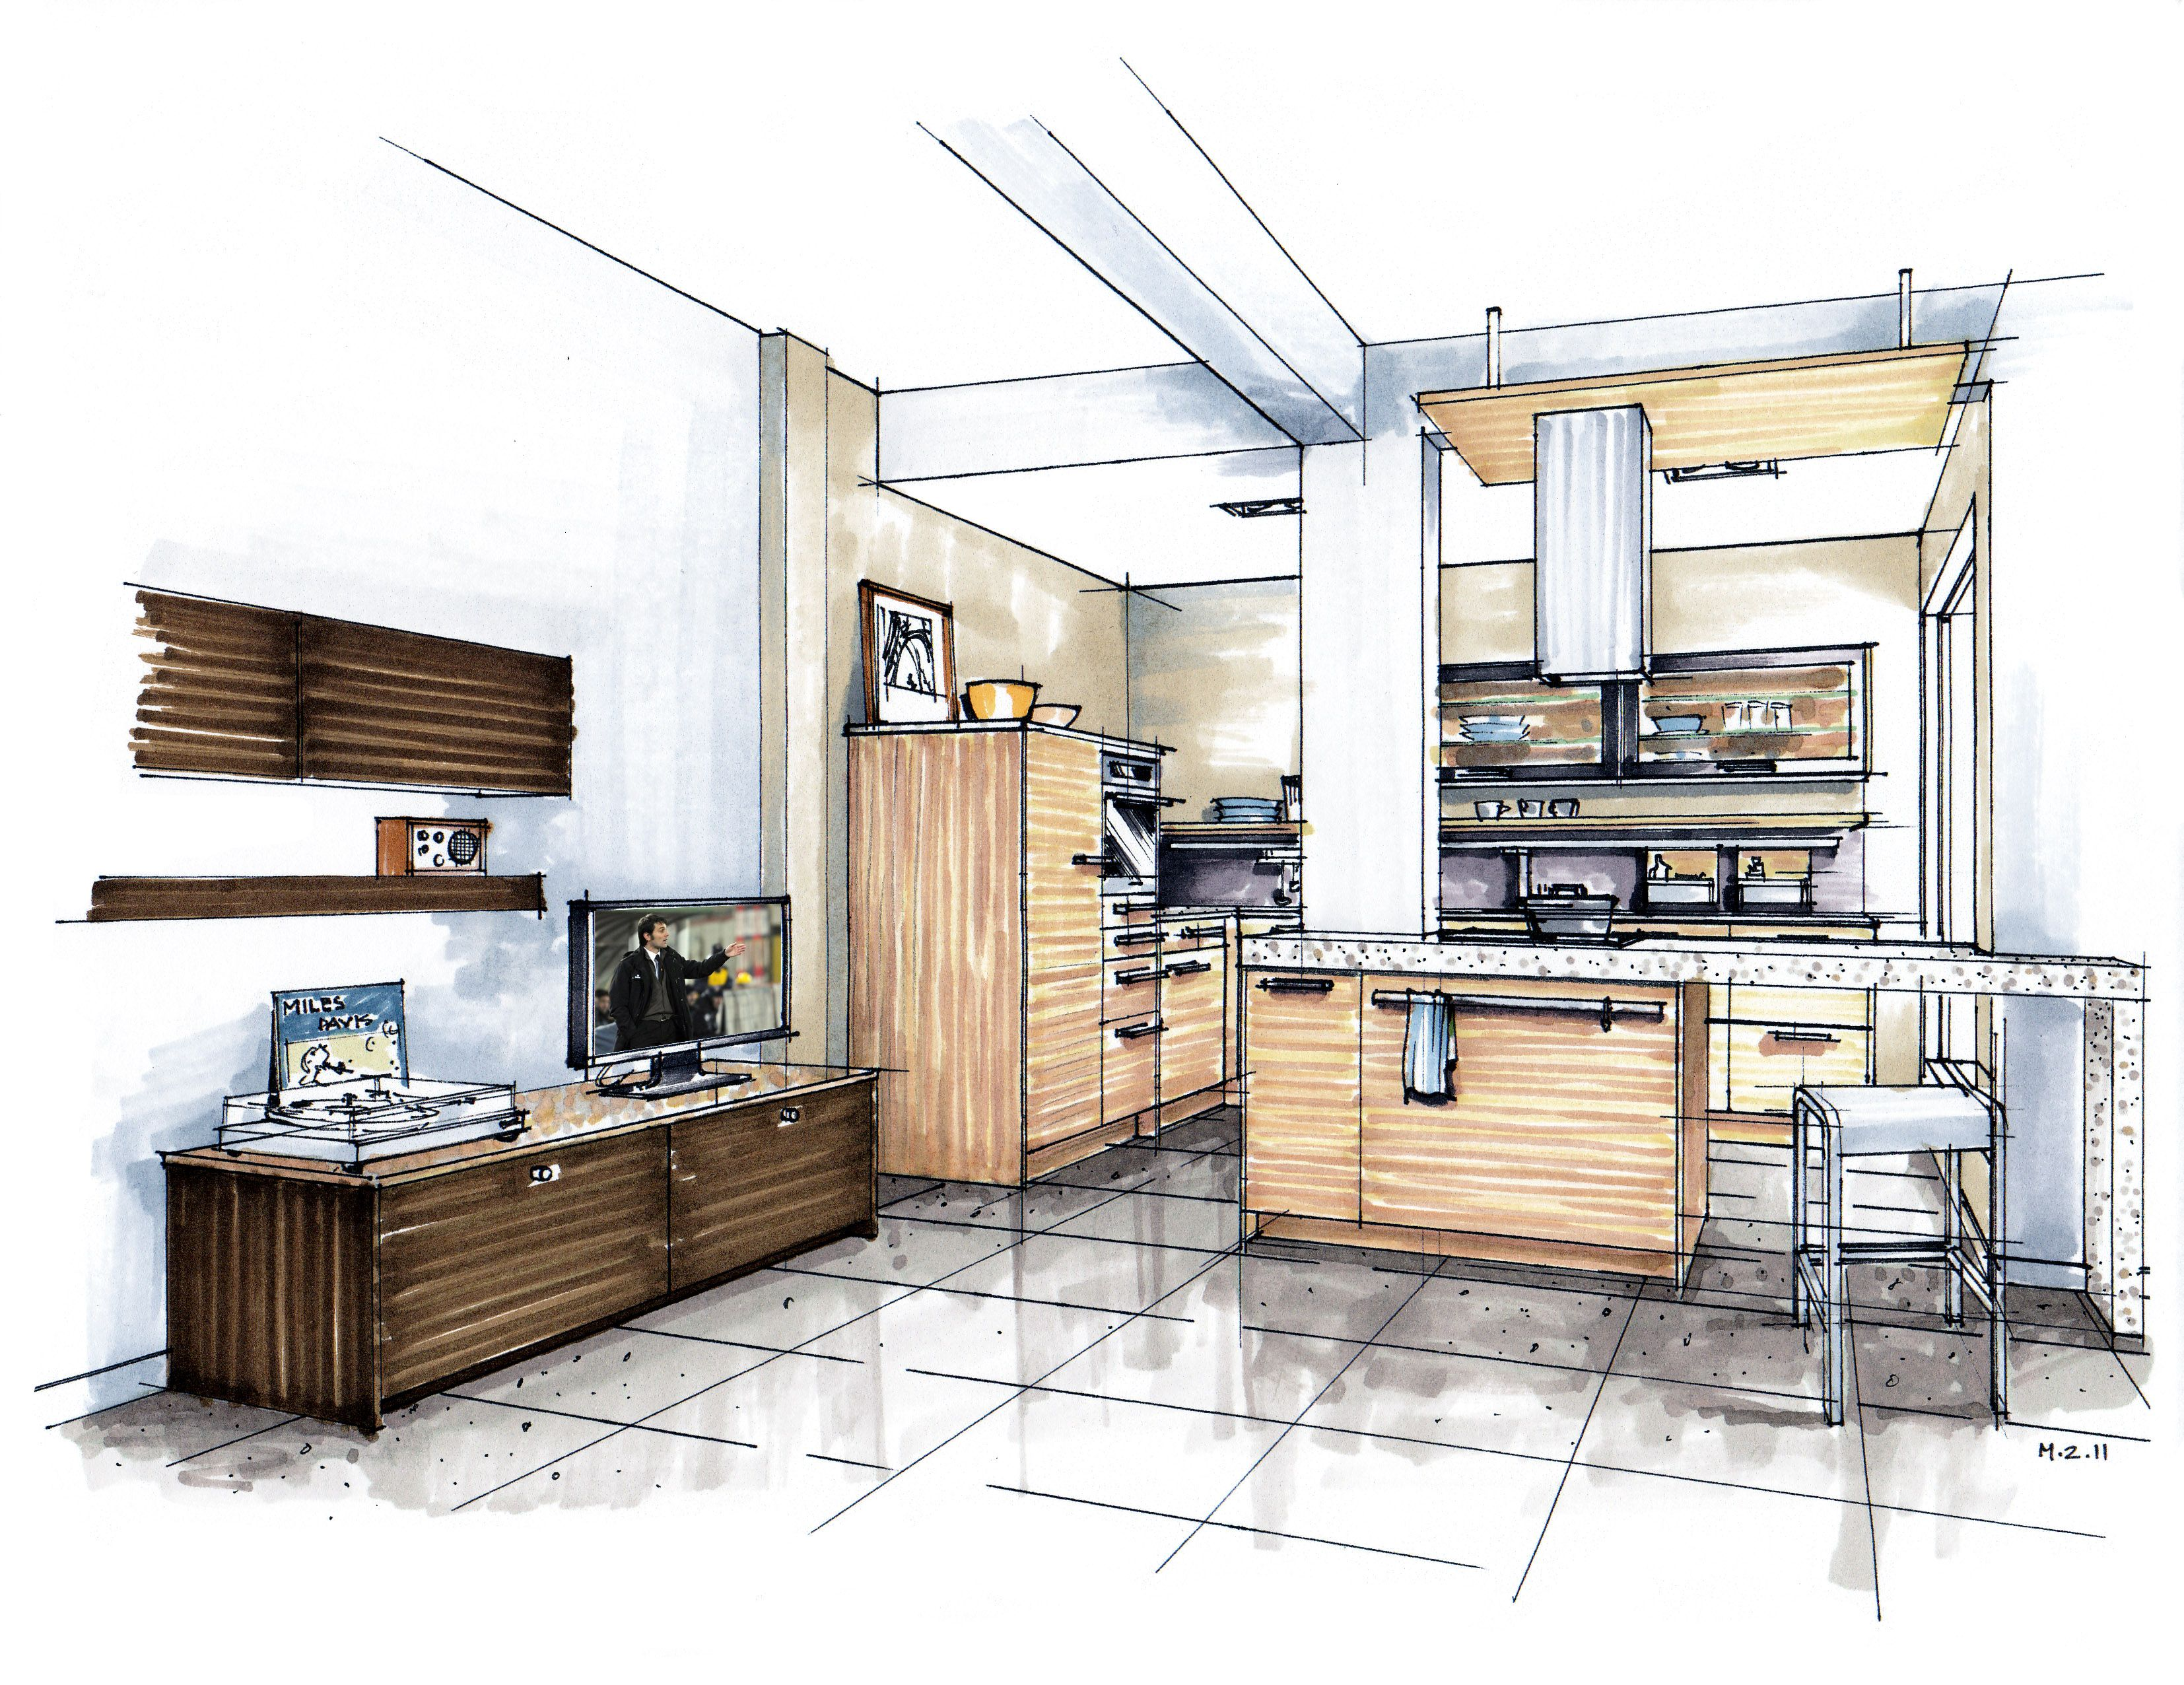 Hand Rendering Mick Ricereto Interior Interior Design Kitchen Sketch Interior Designers